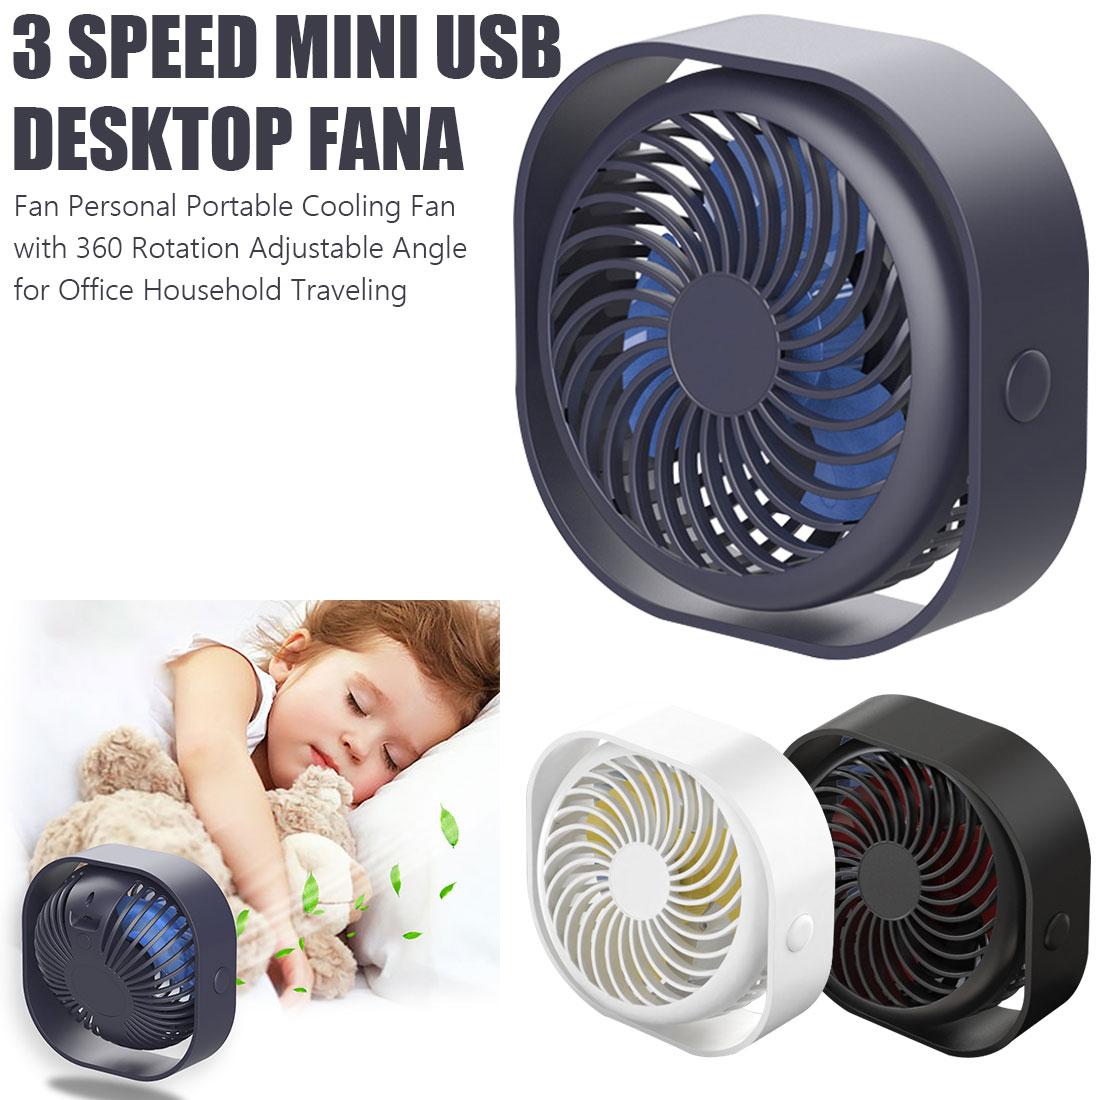 Small USB Desk Fan Quiet Wireless Rechargeable Portable Fan 360 Rotation 3 Speeds Personal Table Cooling Fan Home Office usb clip desk fan mini usb personal cooling fan portable table electronic fan 360° rotation for home office dormitory bedroom